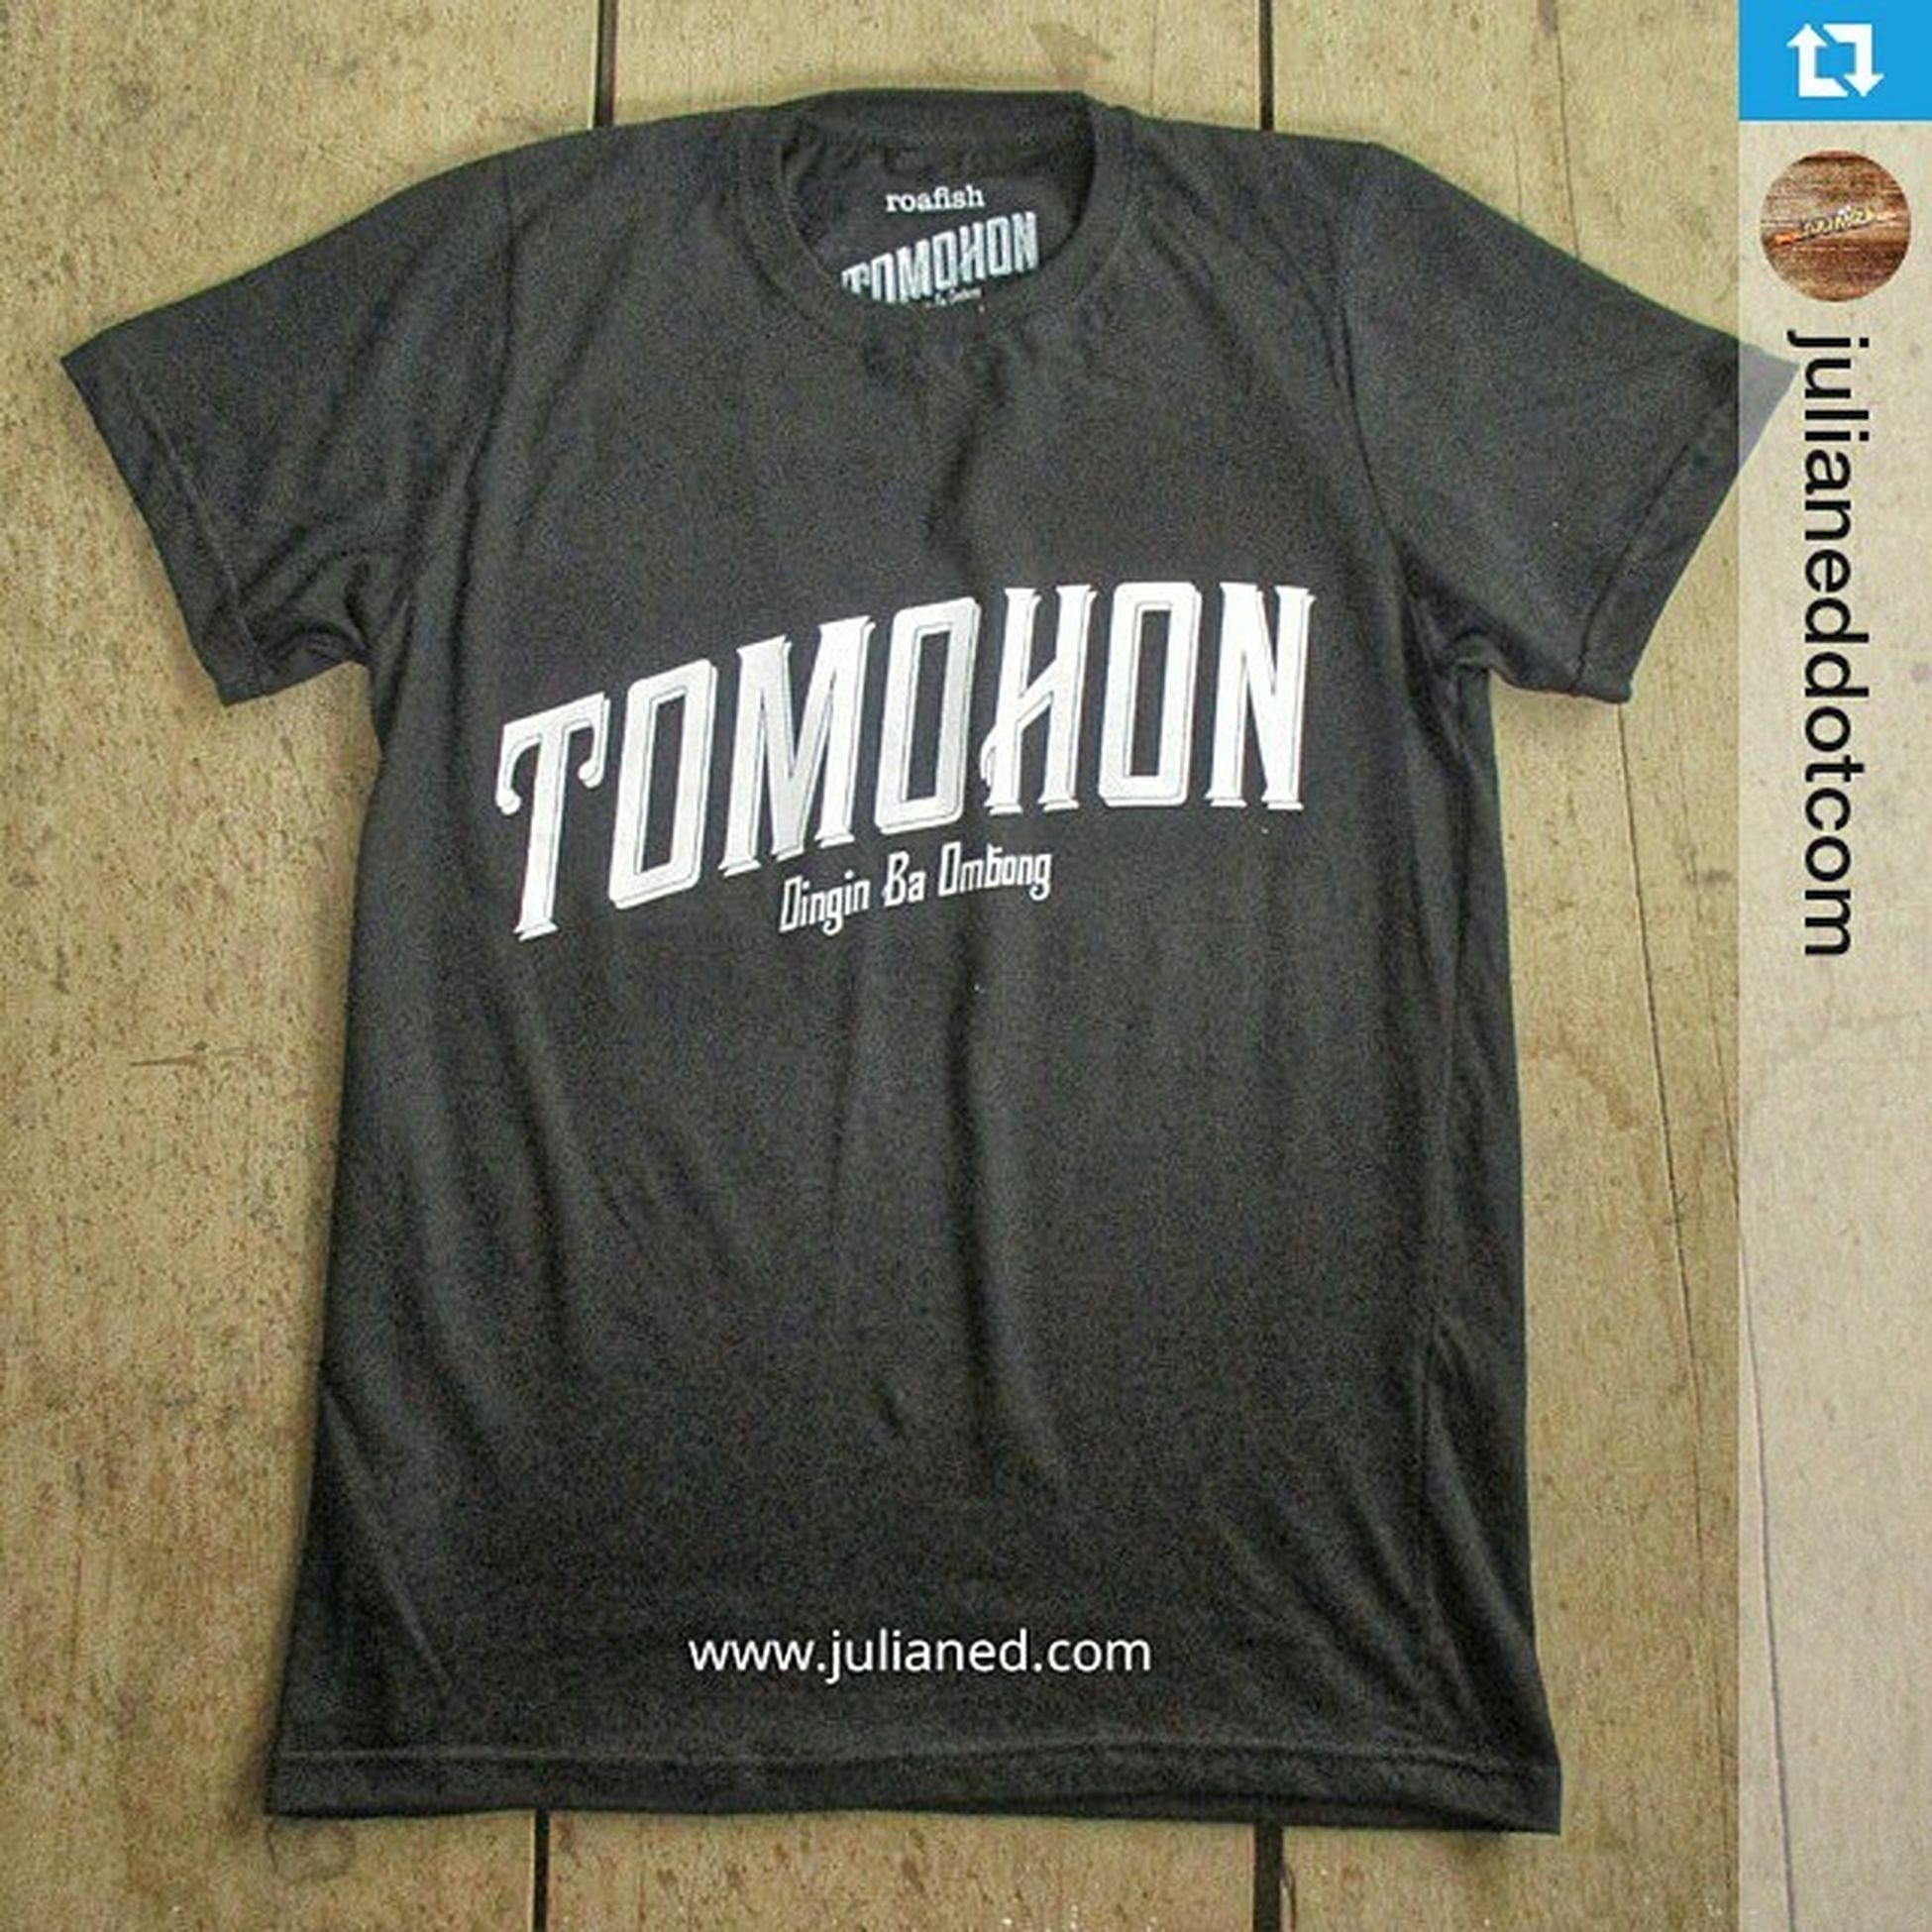 Bahan bagus tinta bagus Repost @julianeddotcom ・・・ NyongVasung Kous roafish TOMOHON Dingin Ba Ombong 100% Katun Combed Sablon Tinta Karet IDR 110.000 (DISKON 10% sd Tgl 14 Feb 2015) wa 08971600703 line julianed.com www.julianed.com Tomohon